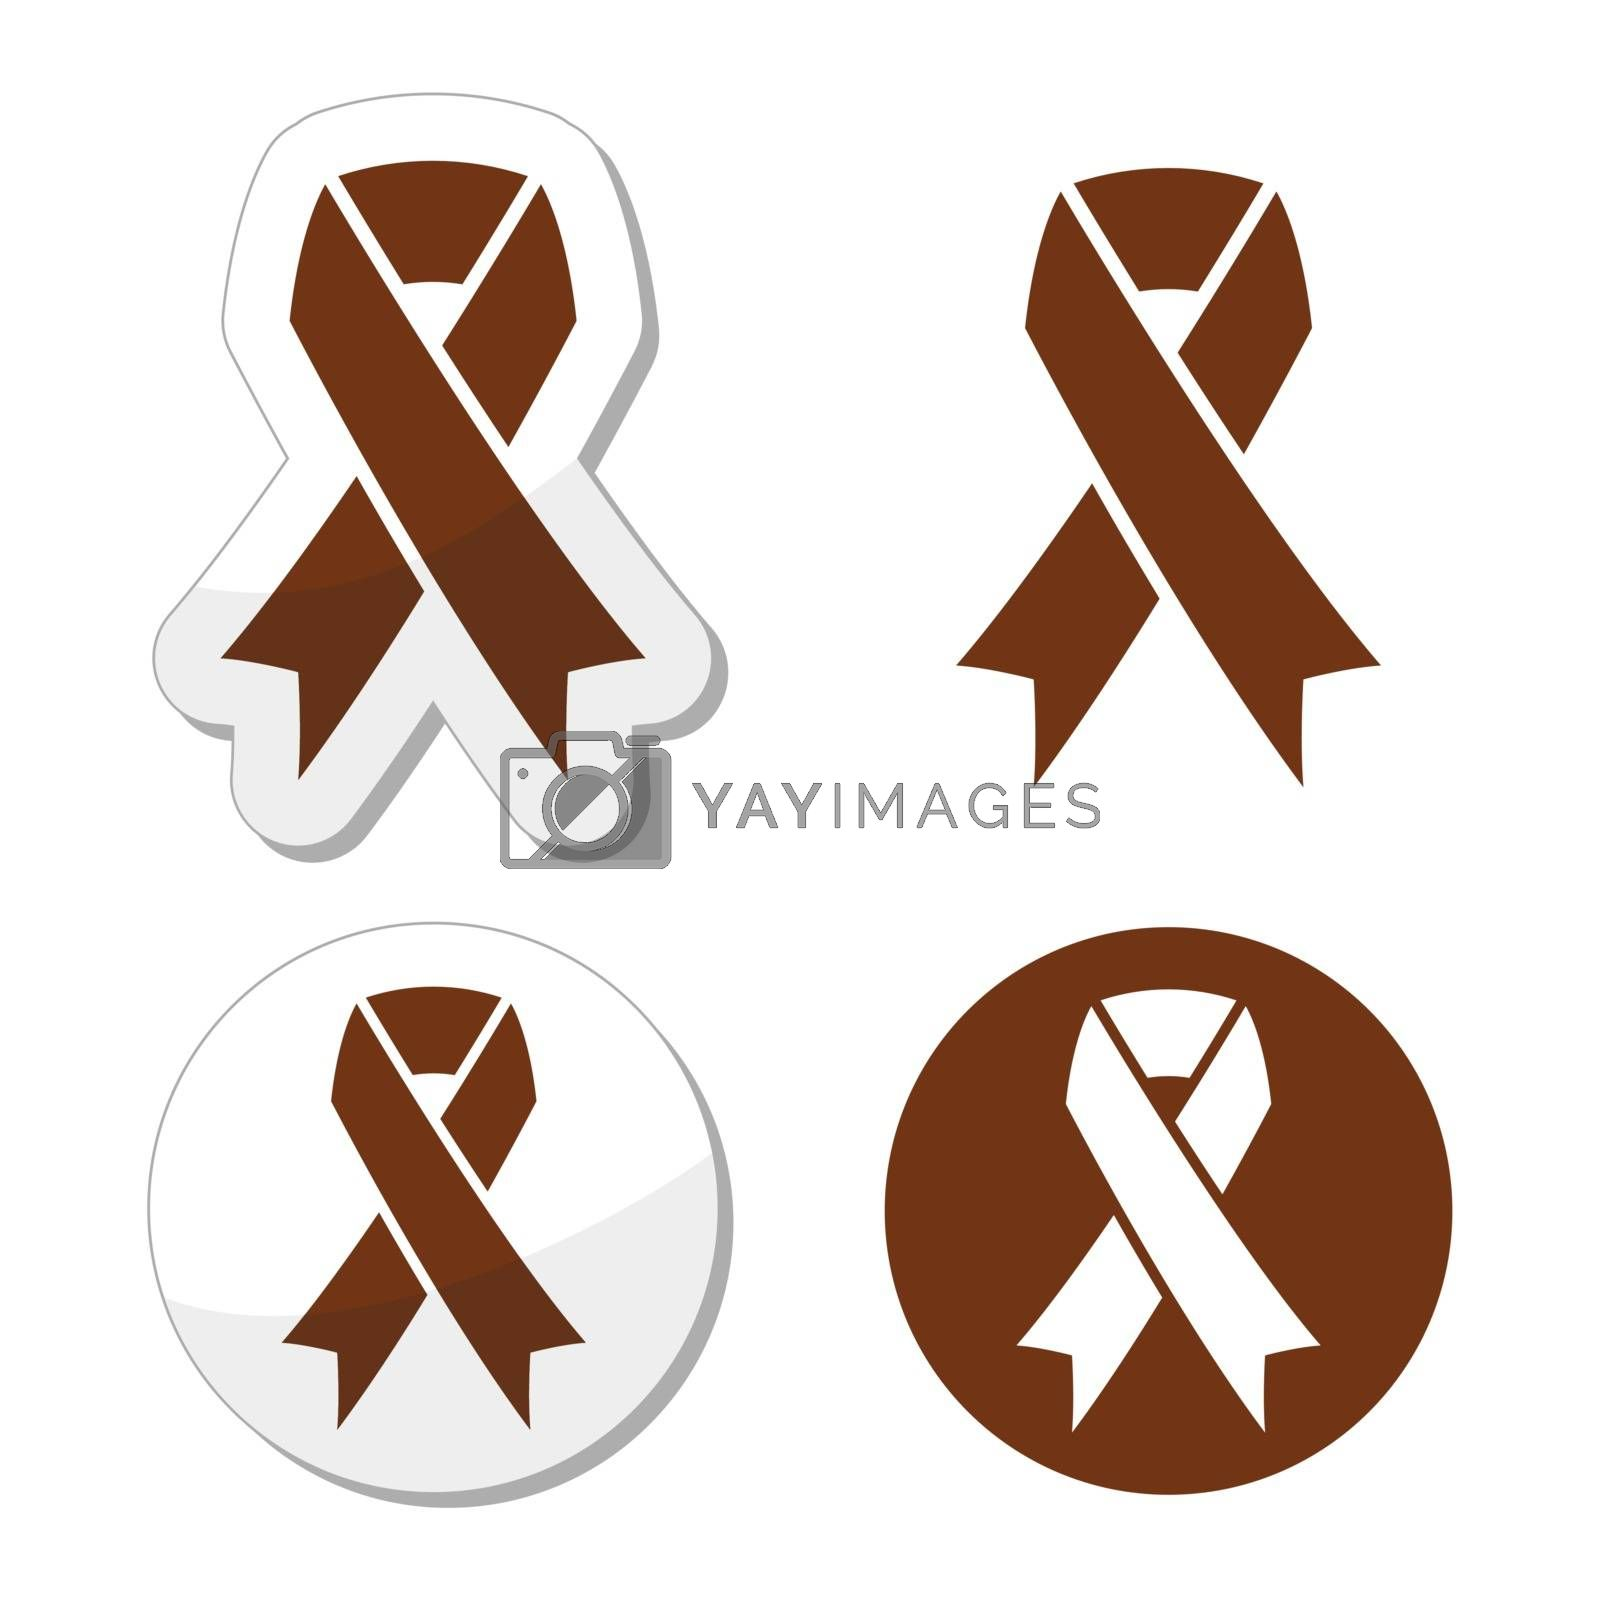 Brown Ribbon Anti Tobacco Symbol Awereness Of Colon Cancer Colorectal Cancer Royalty Free Stock Image Stock Photos Royalty Free Images Vectors Footage Yayimages